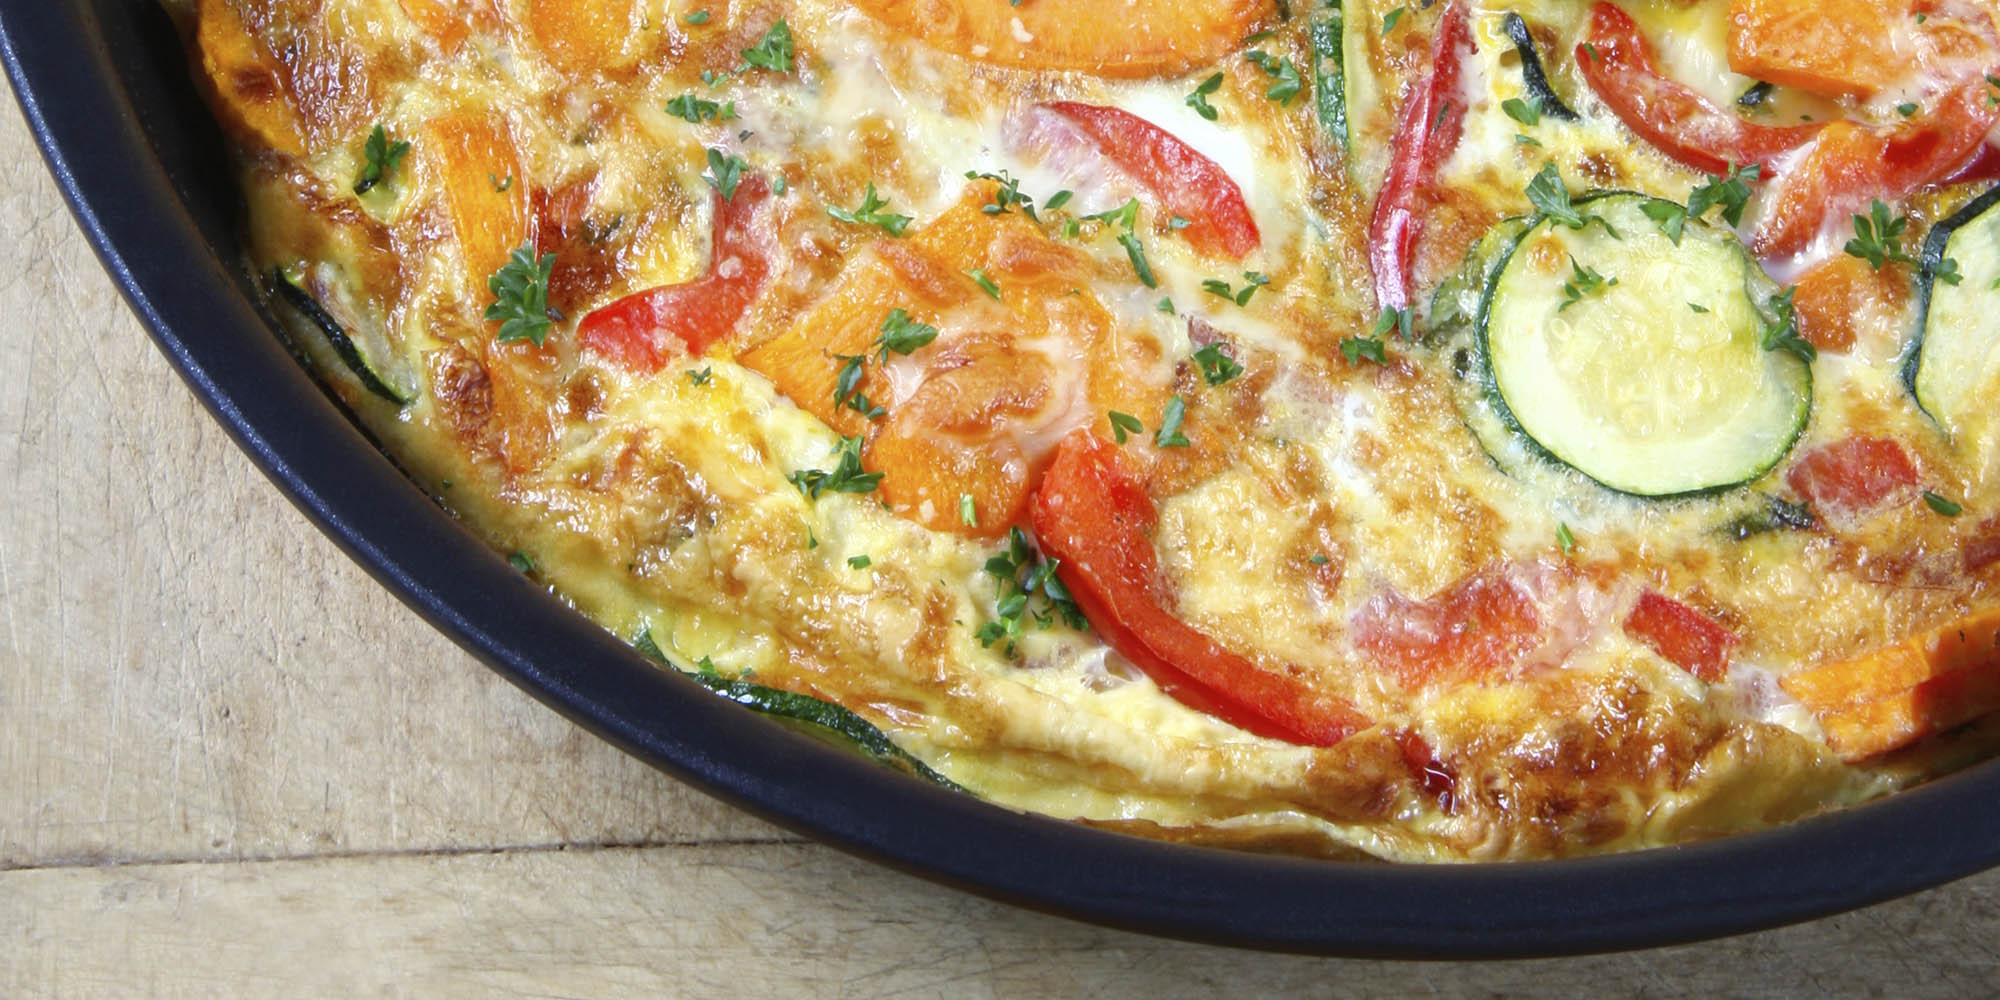 Zucchini, Red Pepper, and Sweet Potato Frittata